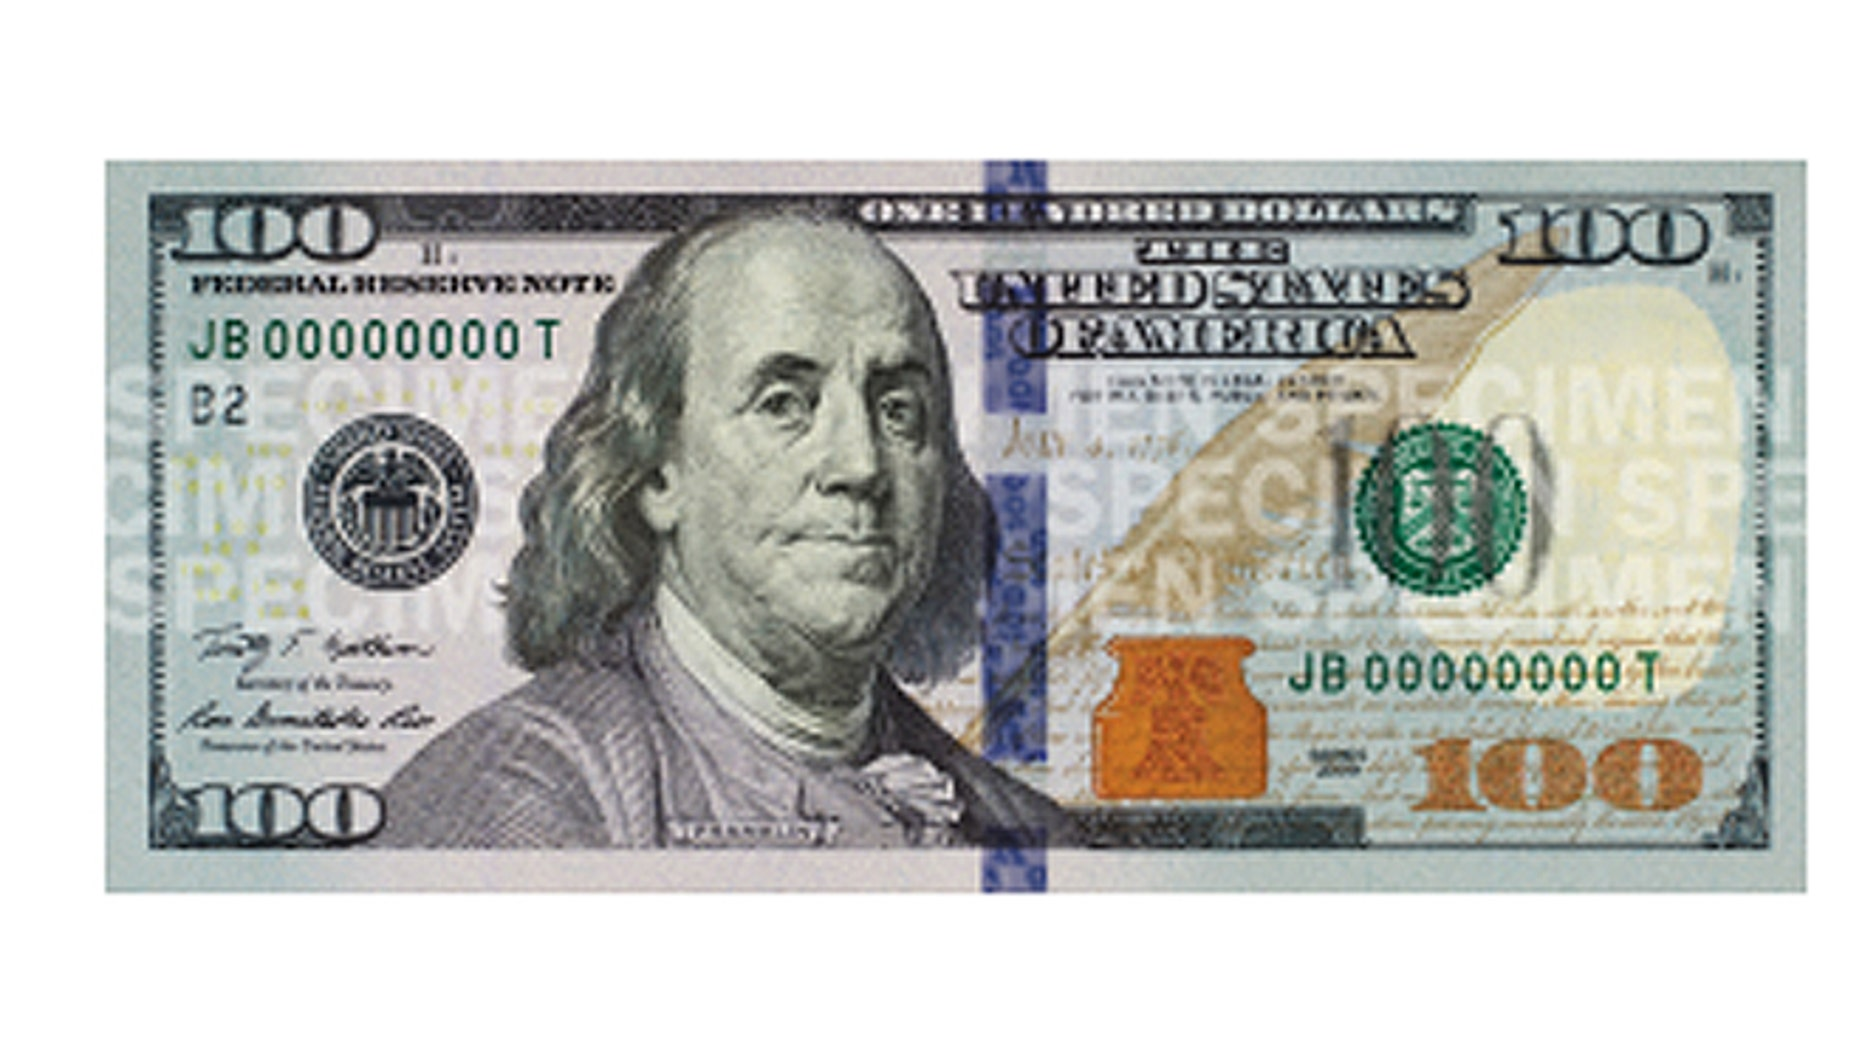 The new $100 bill, seen above, is the latest denomination of U.S. currency to be redesigned and is scheduled to be in circulation beginning on Oct. 8. (U.S. Treasury)